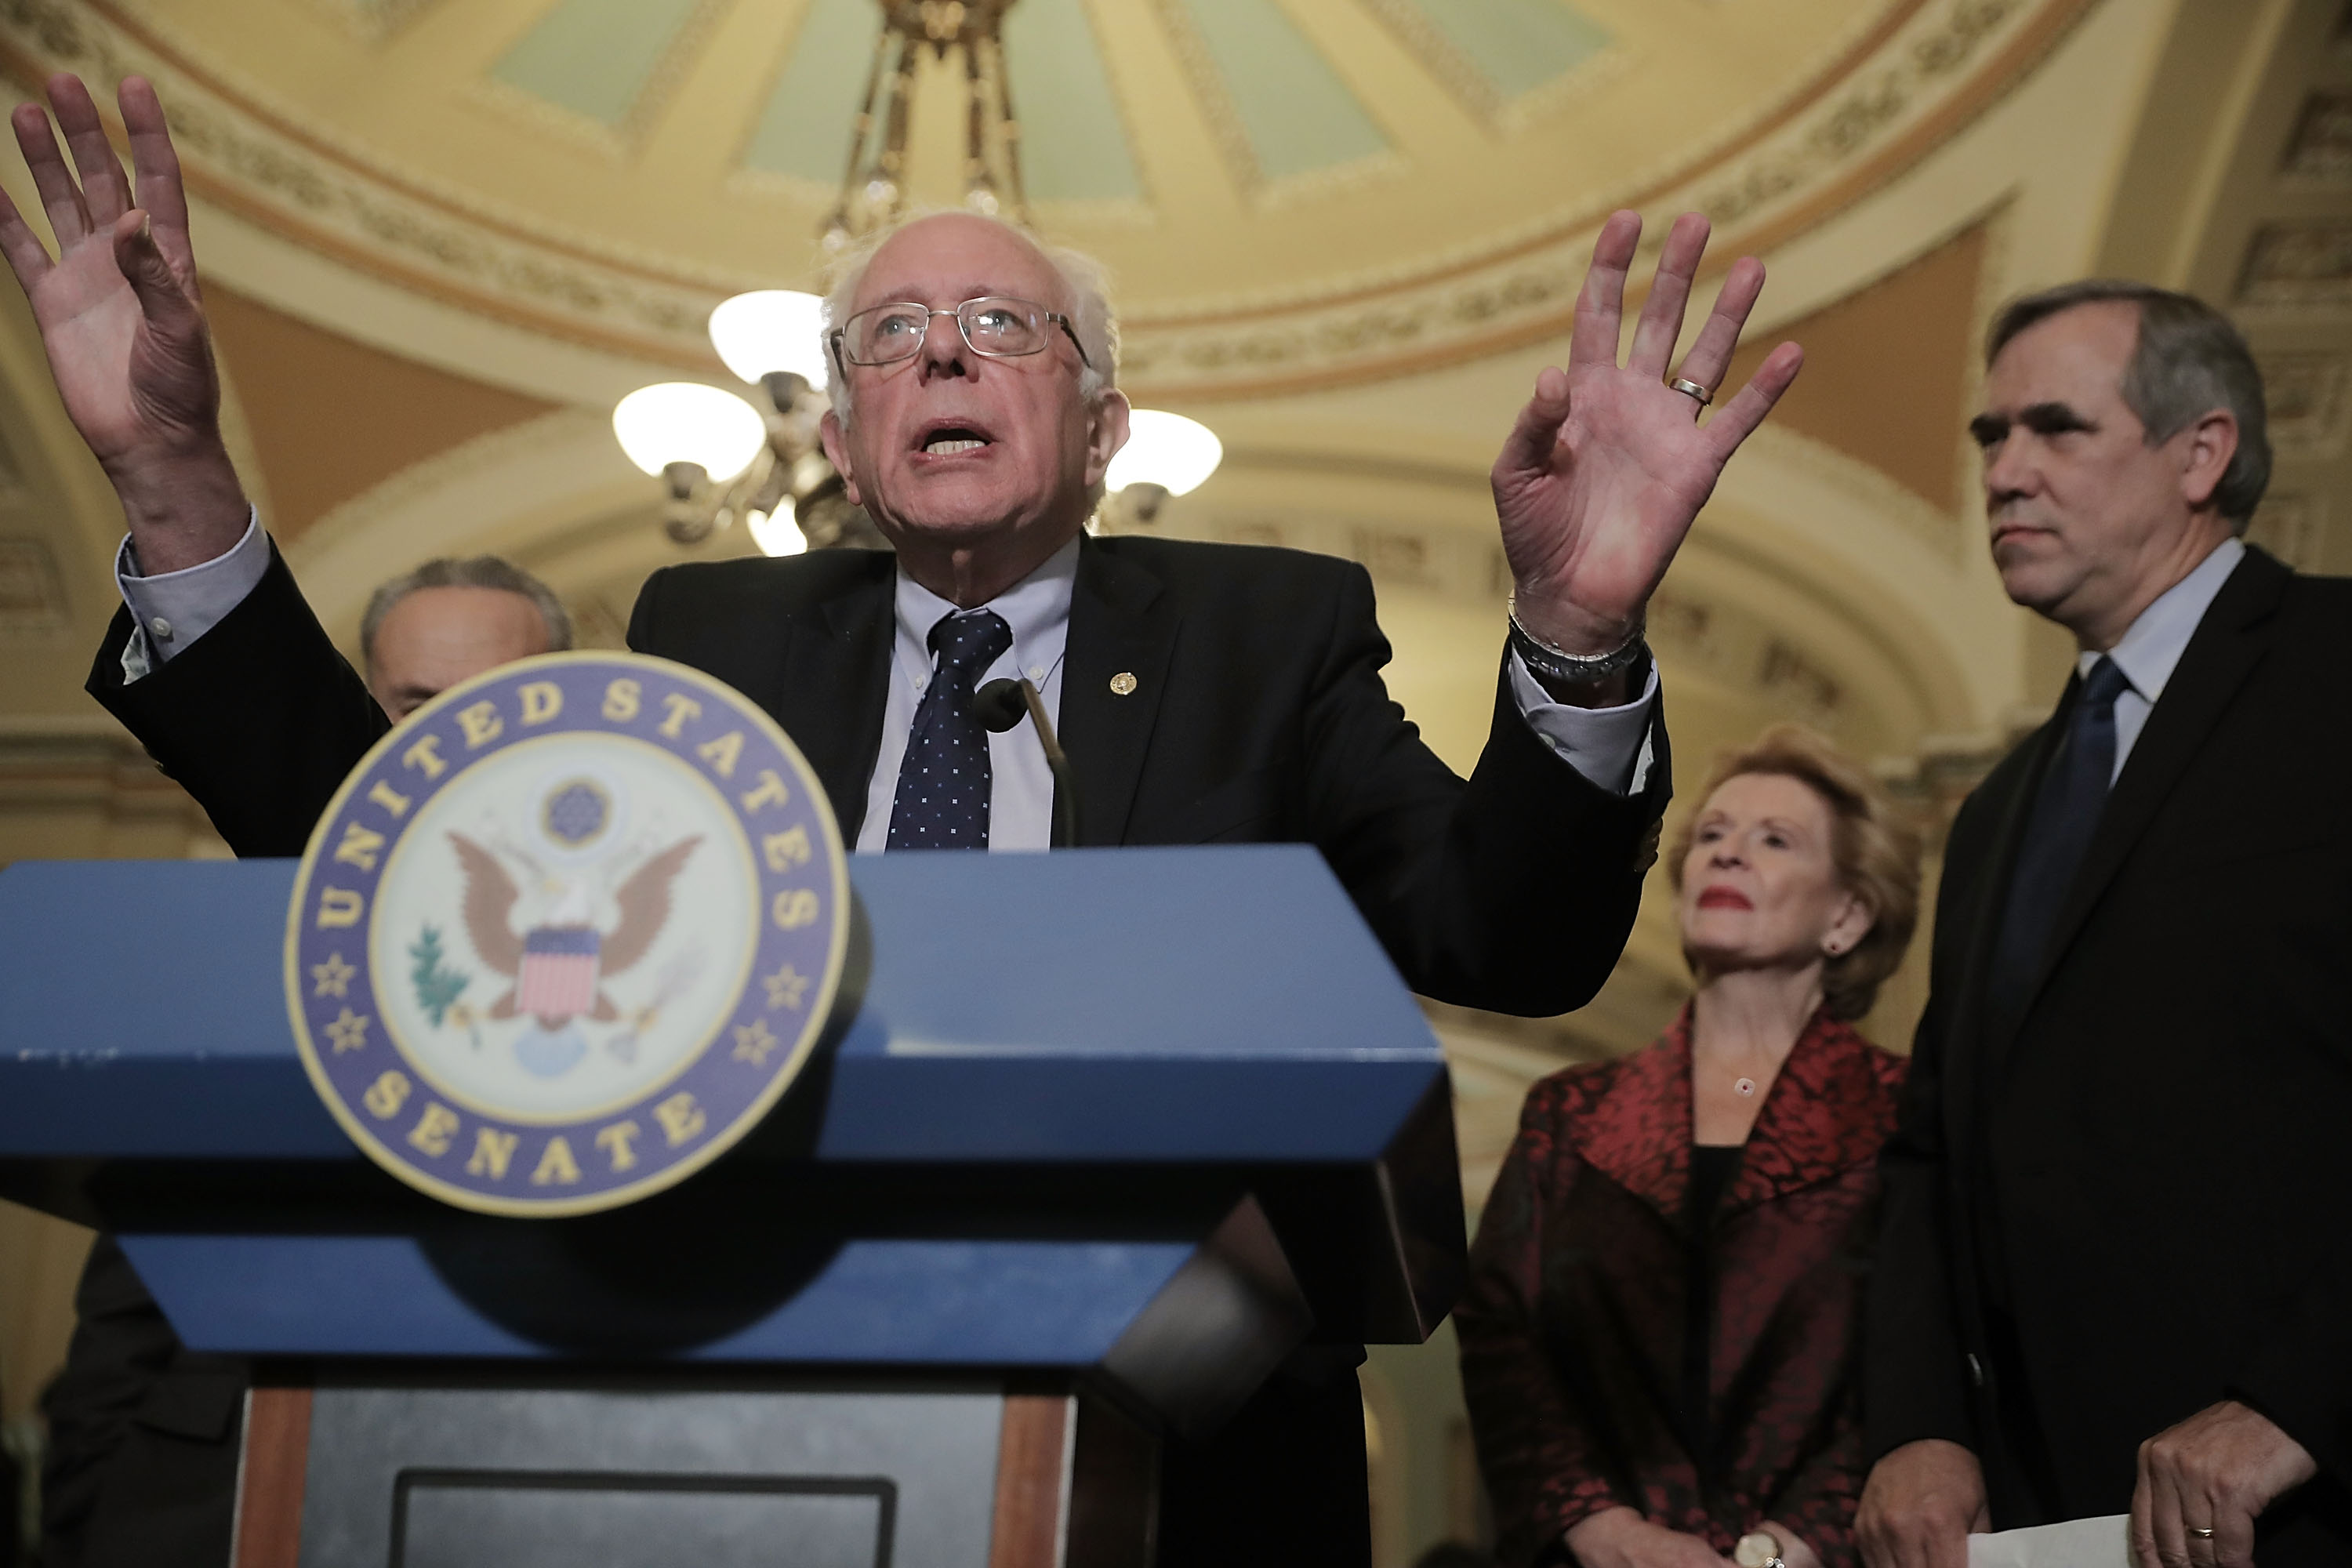 Senator Bernie Sanders speaks from a podium while Senator Jeff Merkley stands to one side listening on October 3, 2017.